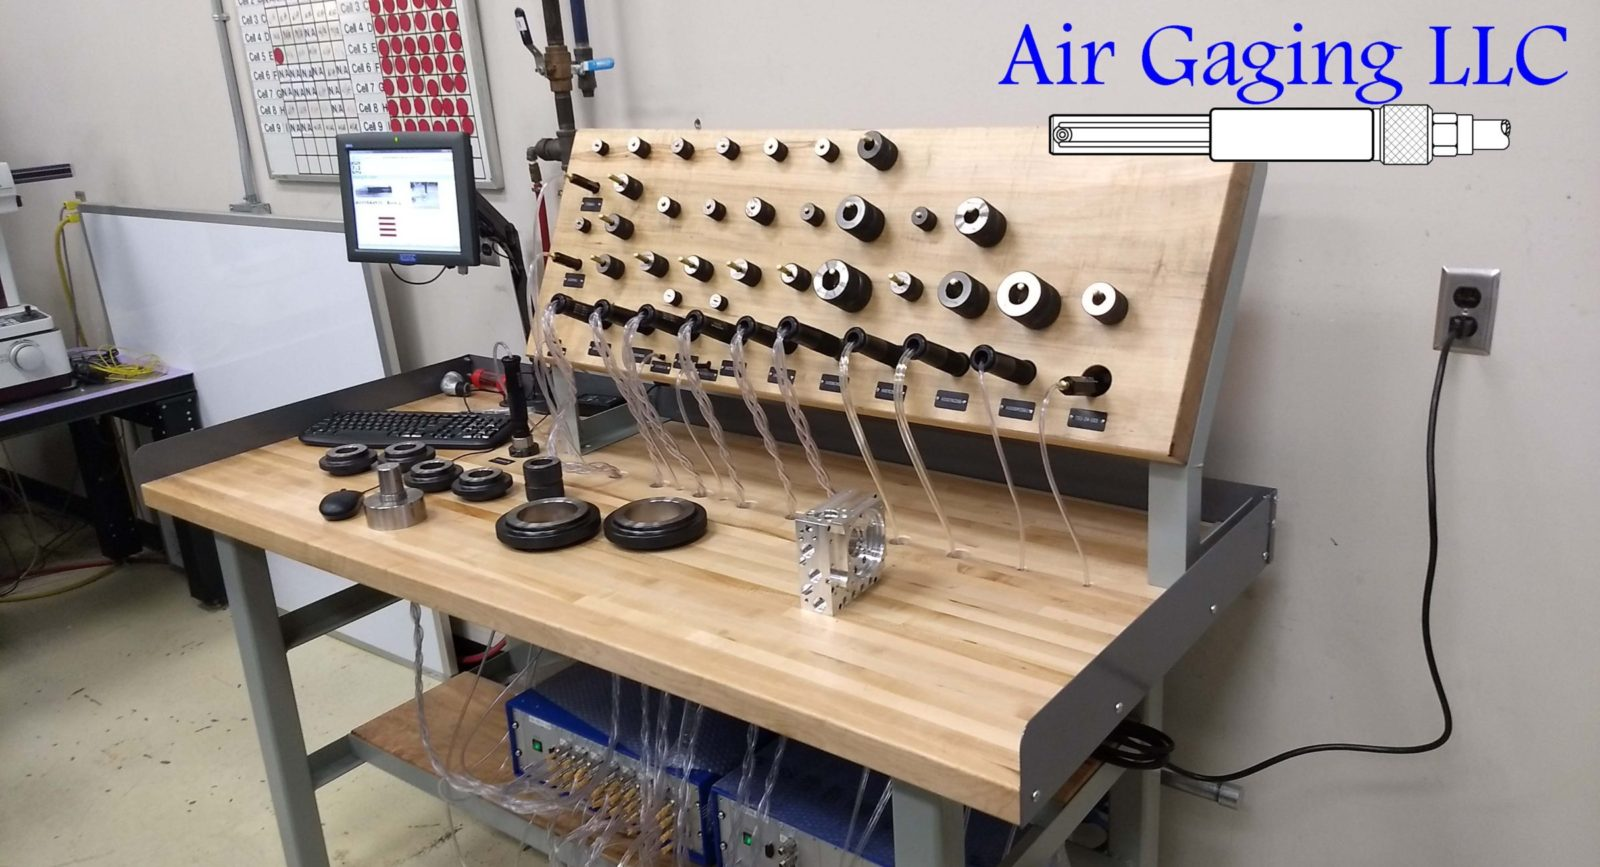 Air Gaging LLC workbench air gaging station utilizing a Stotz MRA measuring computer with 34 measuring circuits